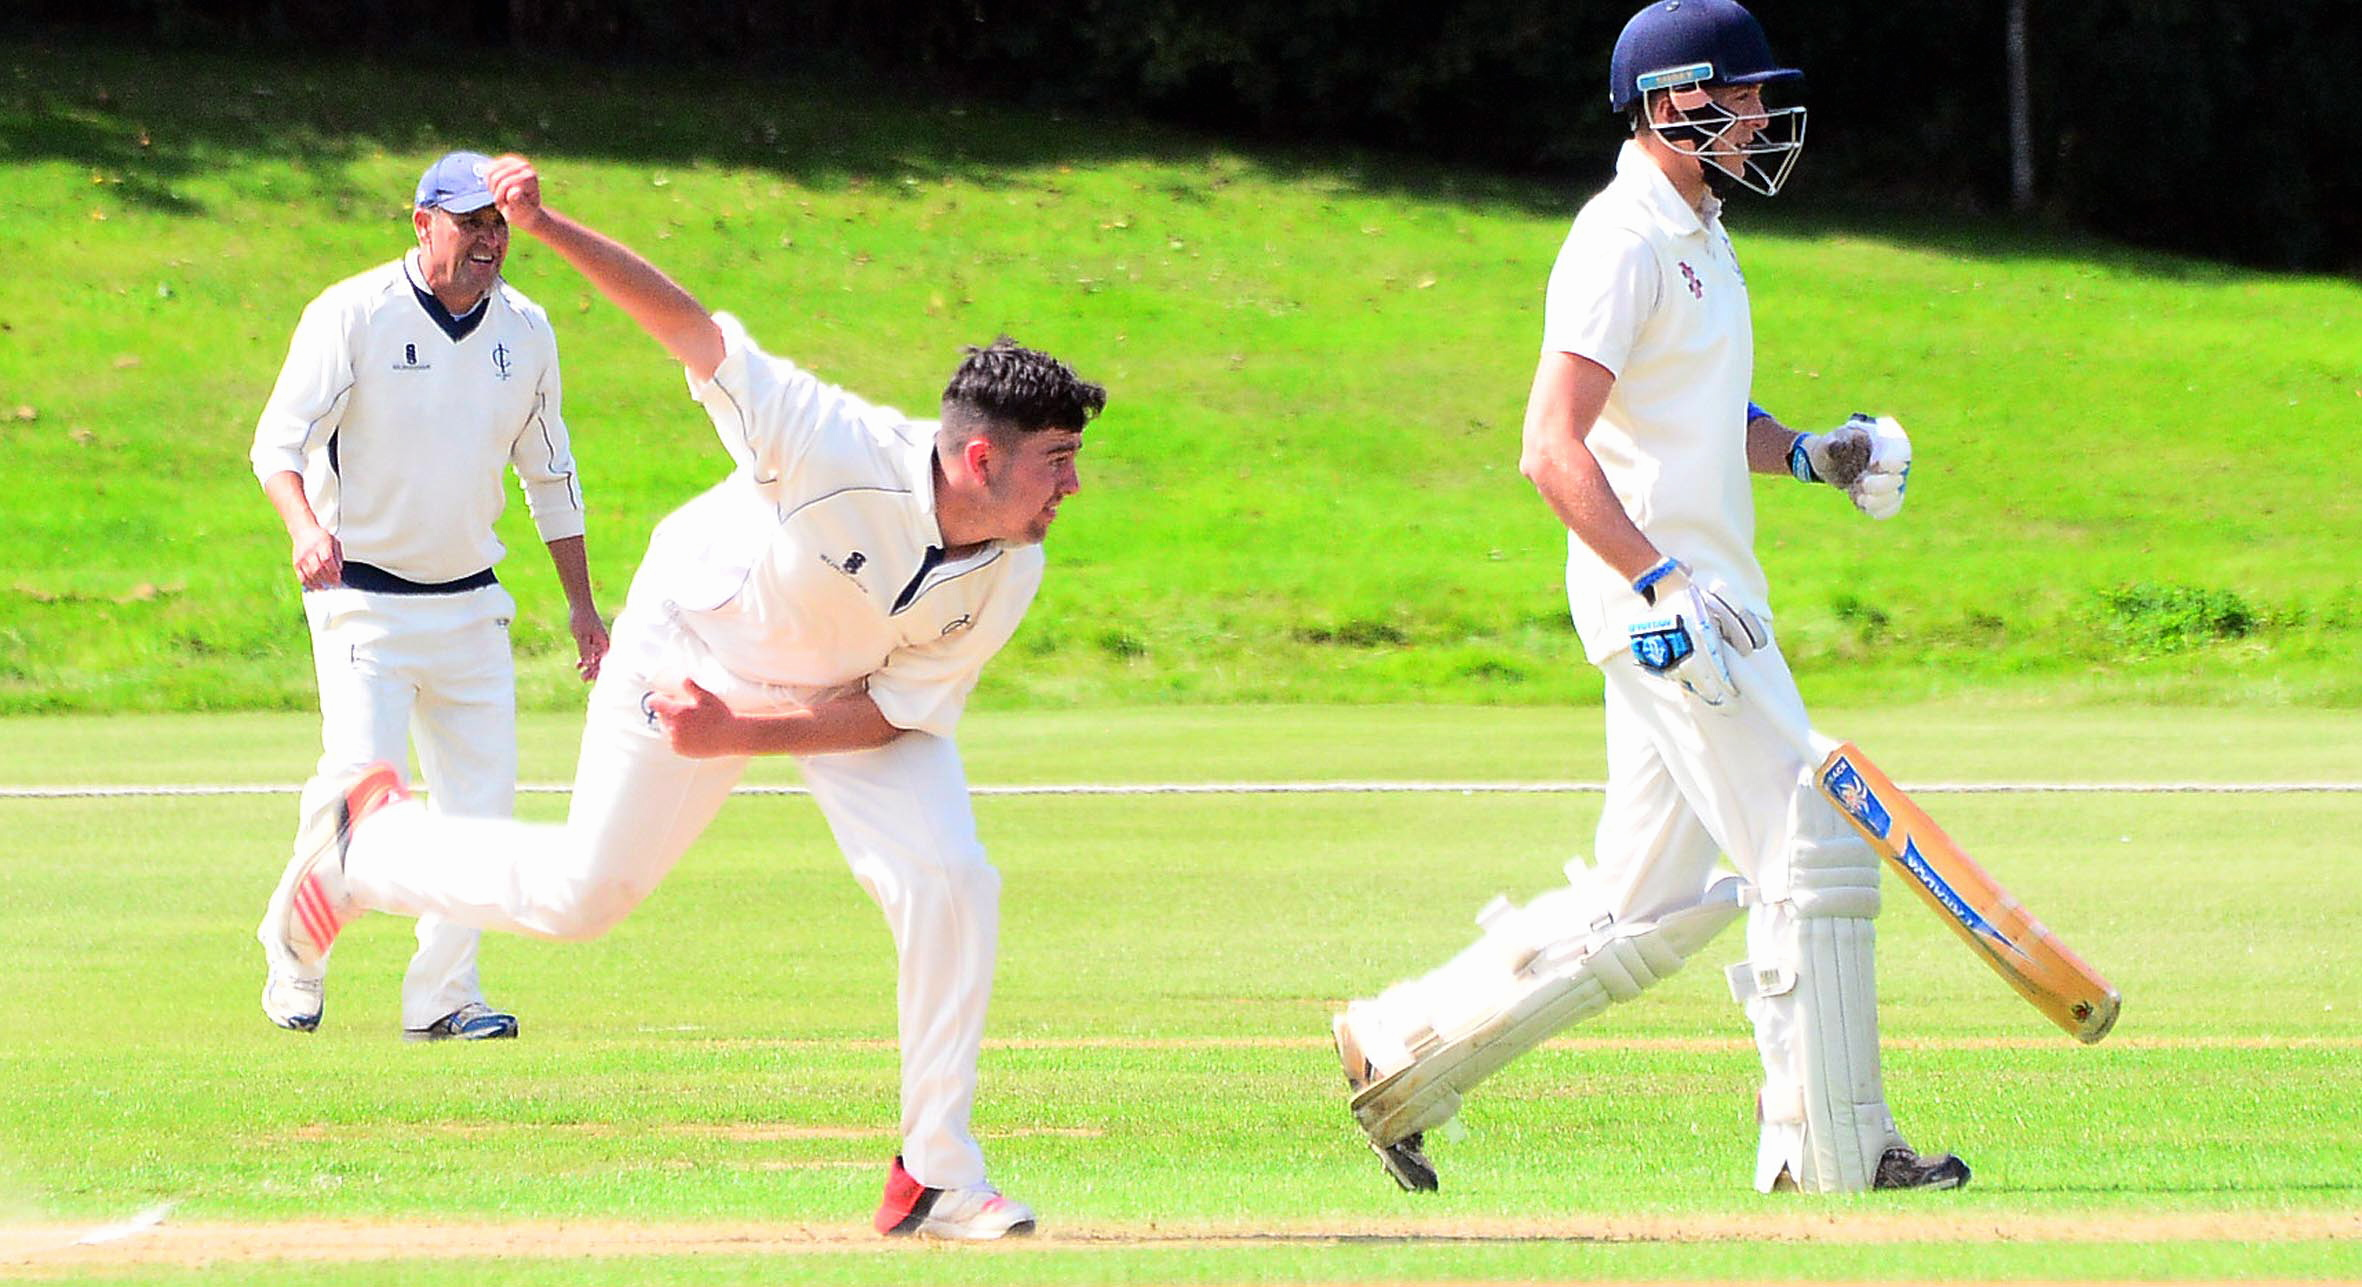 THREE WICKETS: Sam Grinter in action for Ilminster against Taunton on Saturday. Pic: Steve Richardson